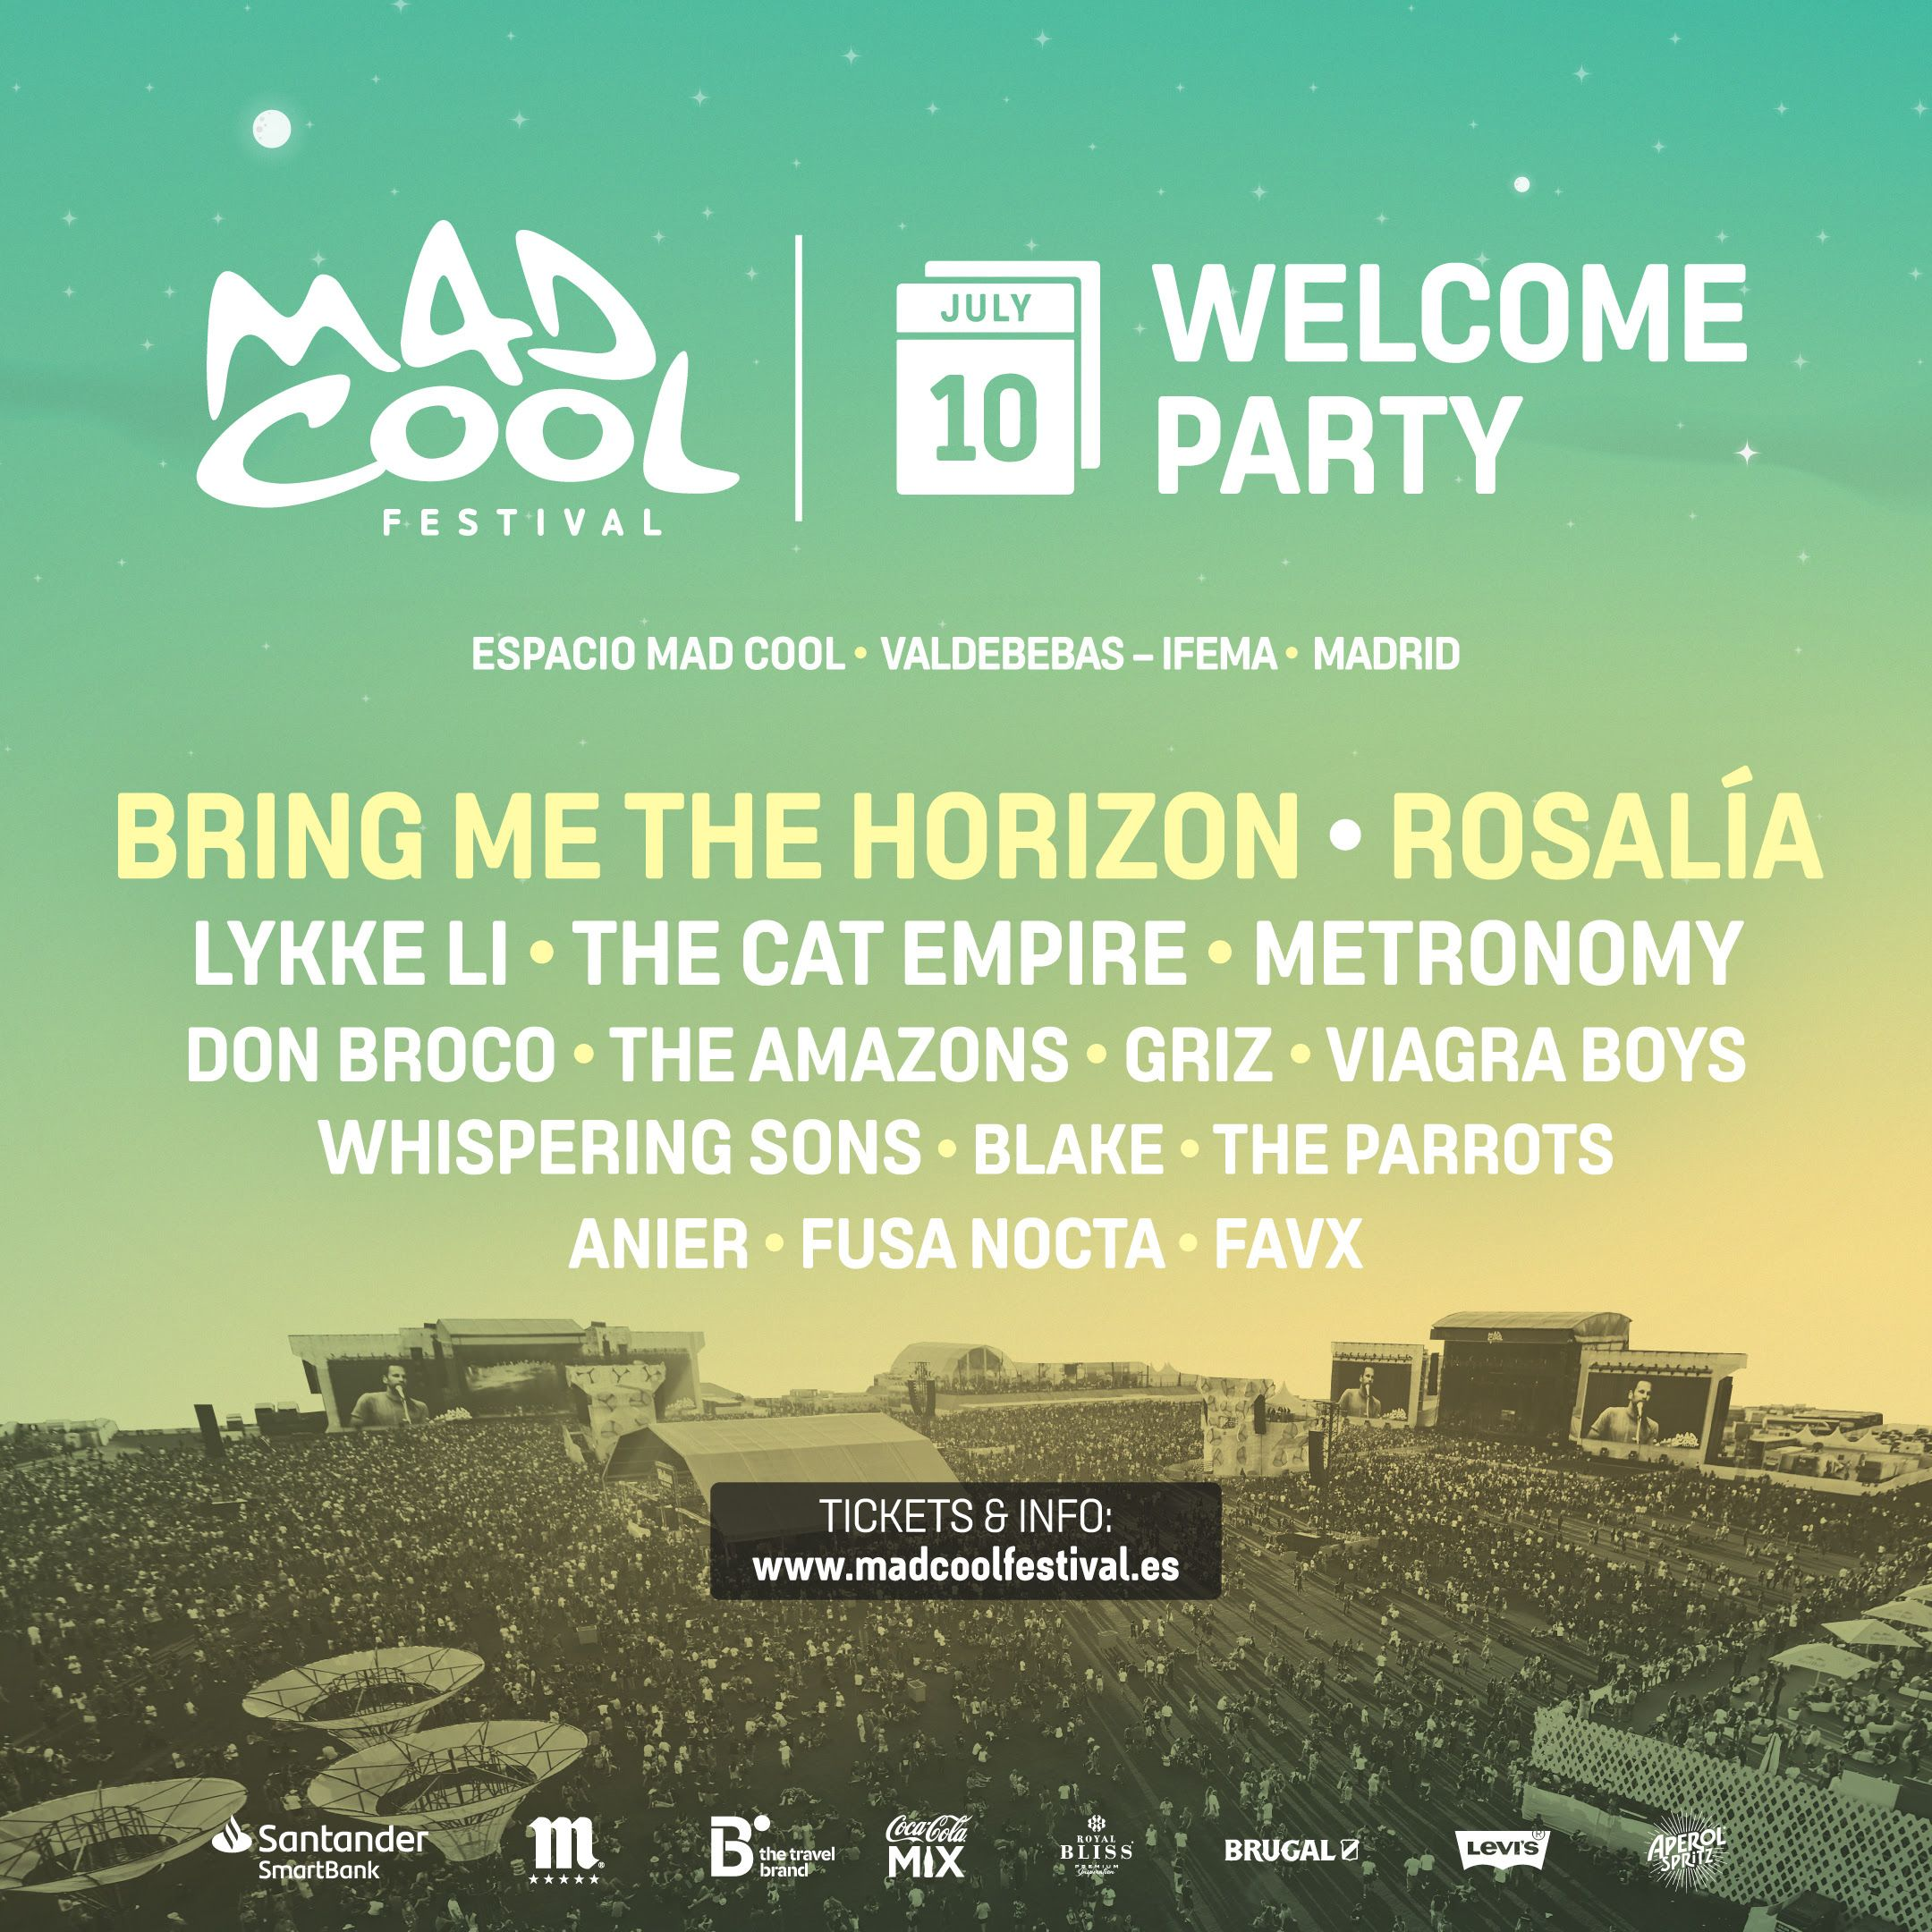 ROSALÍA, BRING ME THE HORIZON, METRONOMY… ¡YA A LA VENTA LAS ENTRADAS PARA LA MAD COOL WELCOME PARTY 2019!